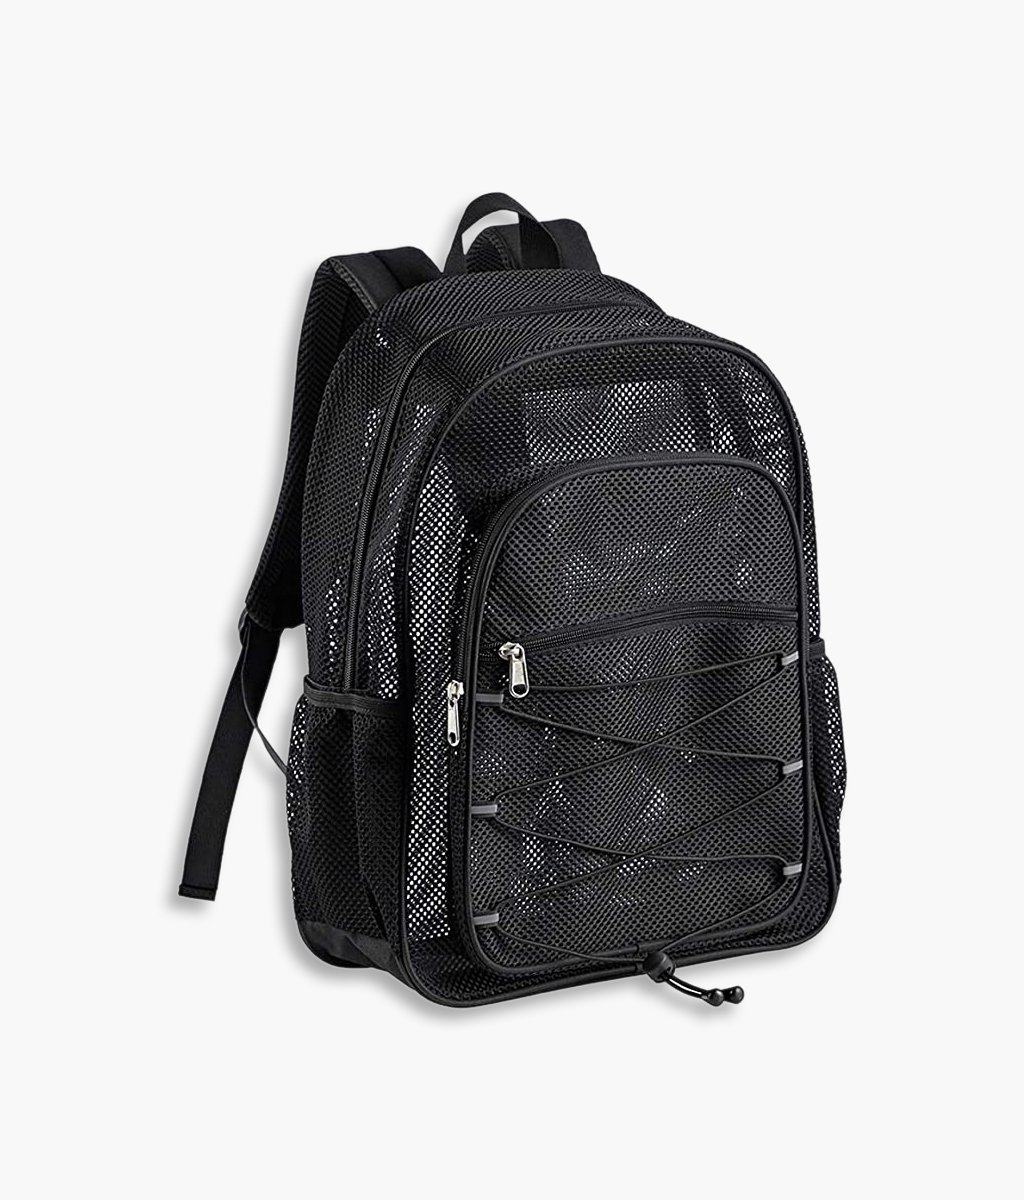 Sturdy Mesh Pack Backpack